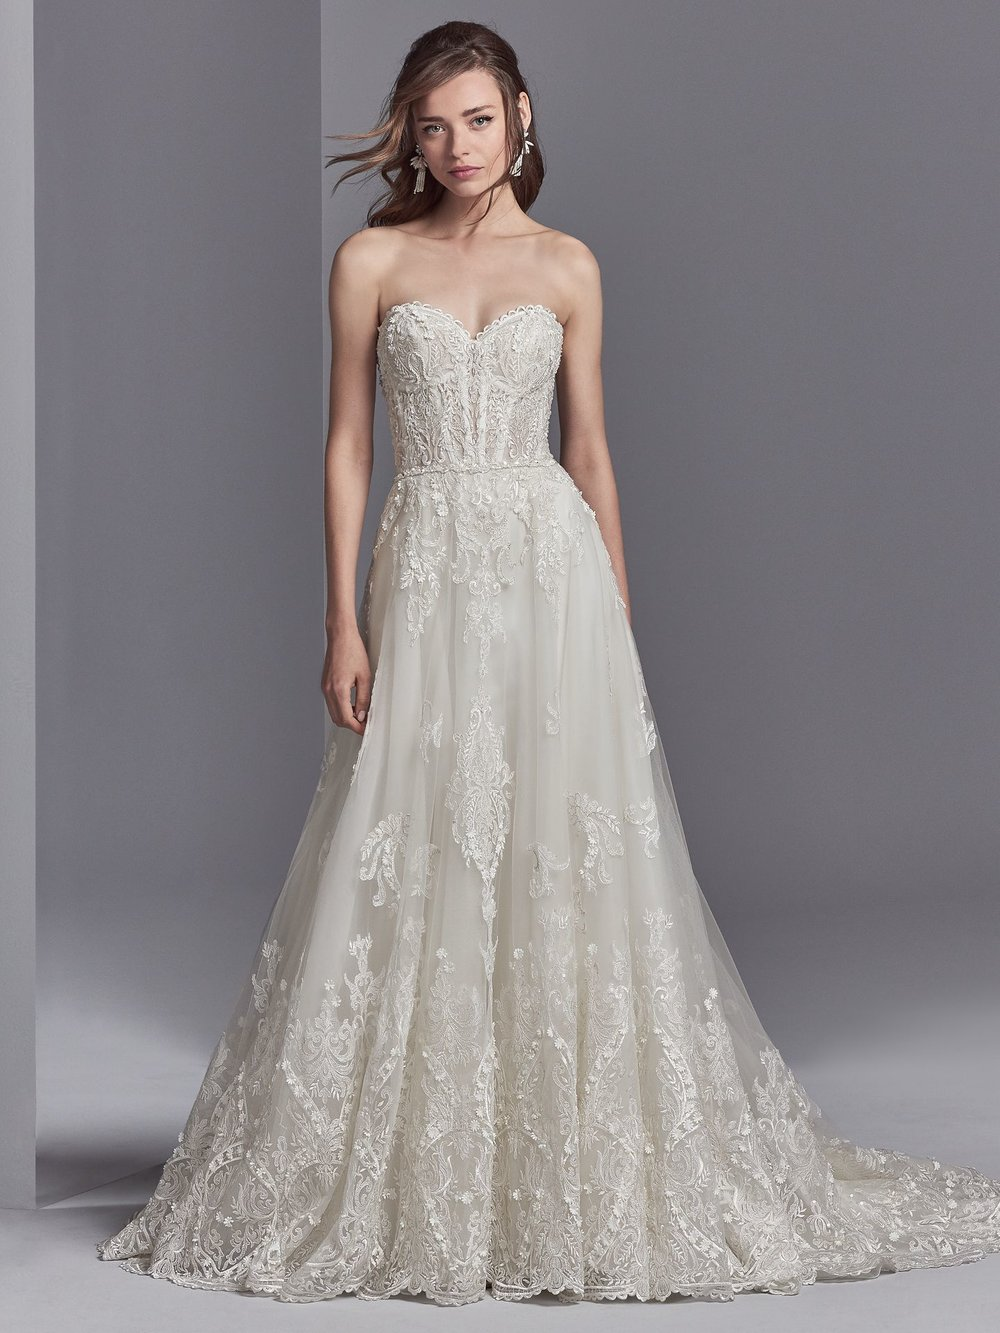 Sottero-and-Midgley-Wedding-Dress-Watson-8SN544-Alt1.jpg